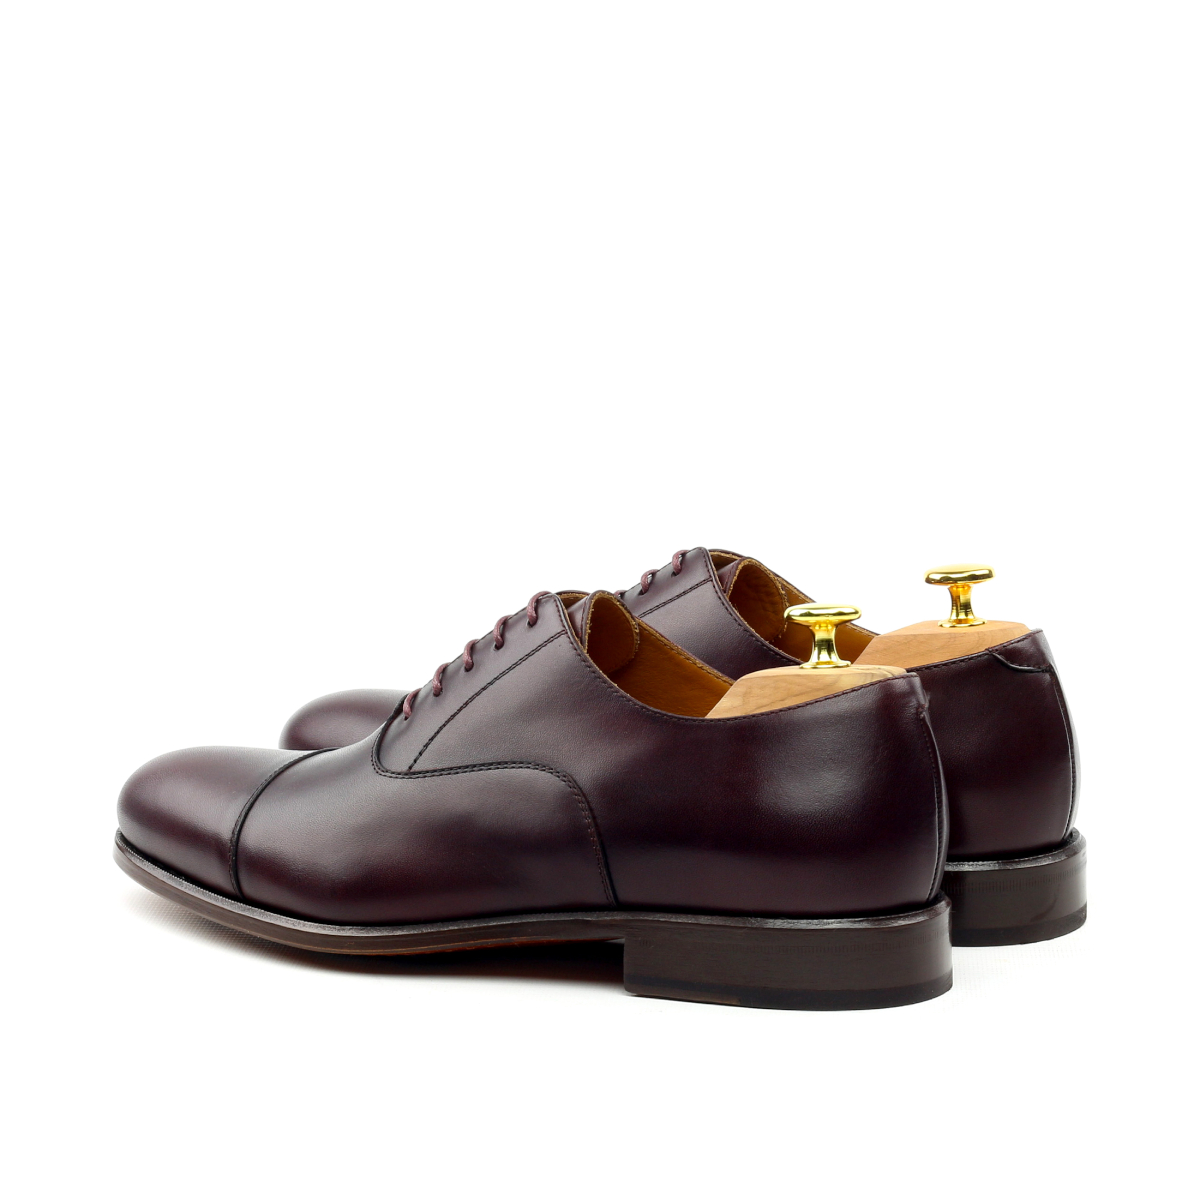 Oxford cap toe en boxcalf burdeos